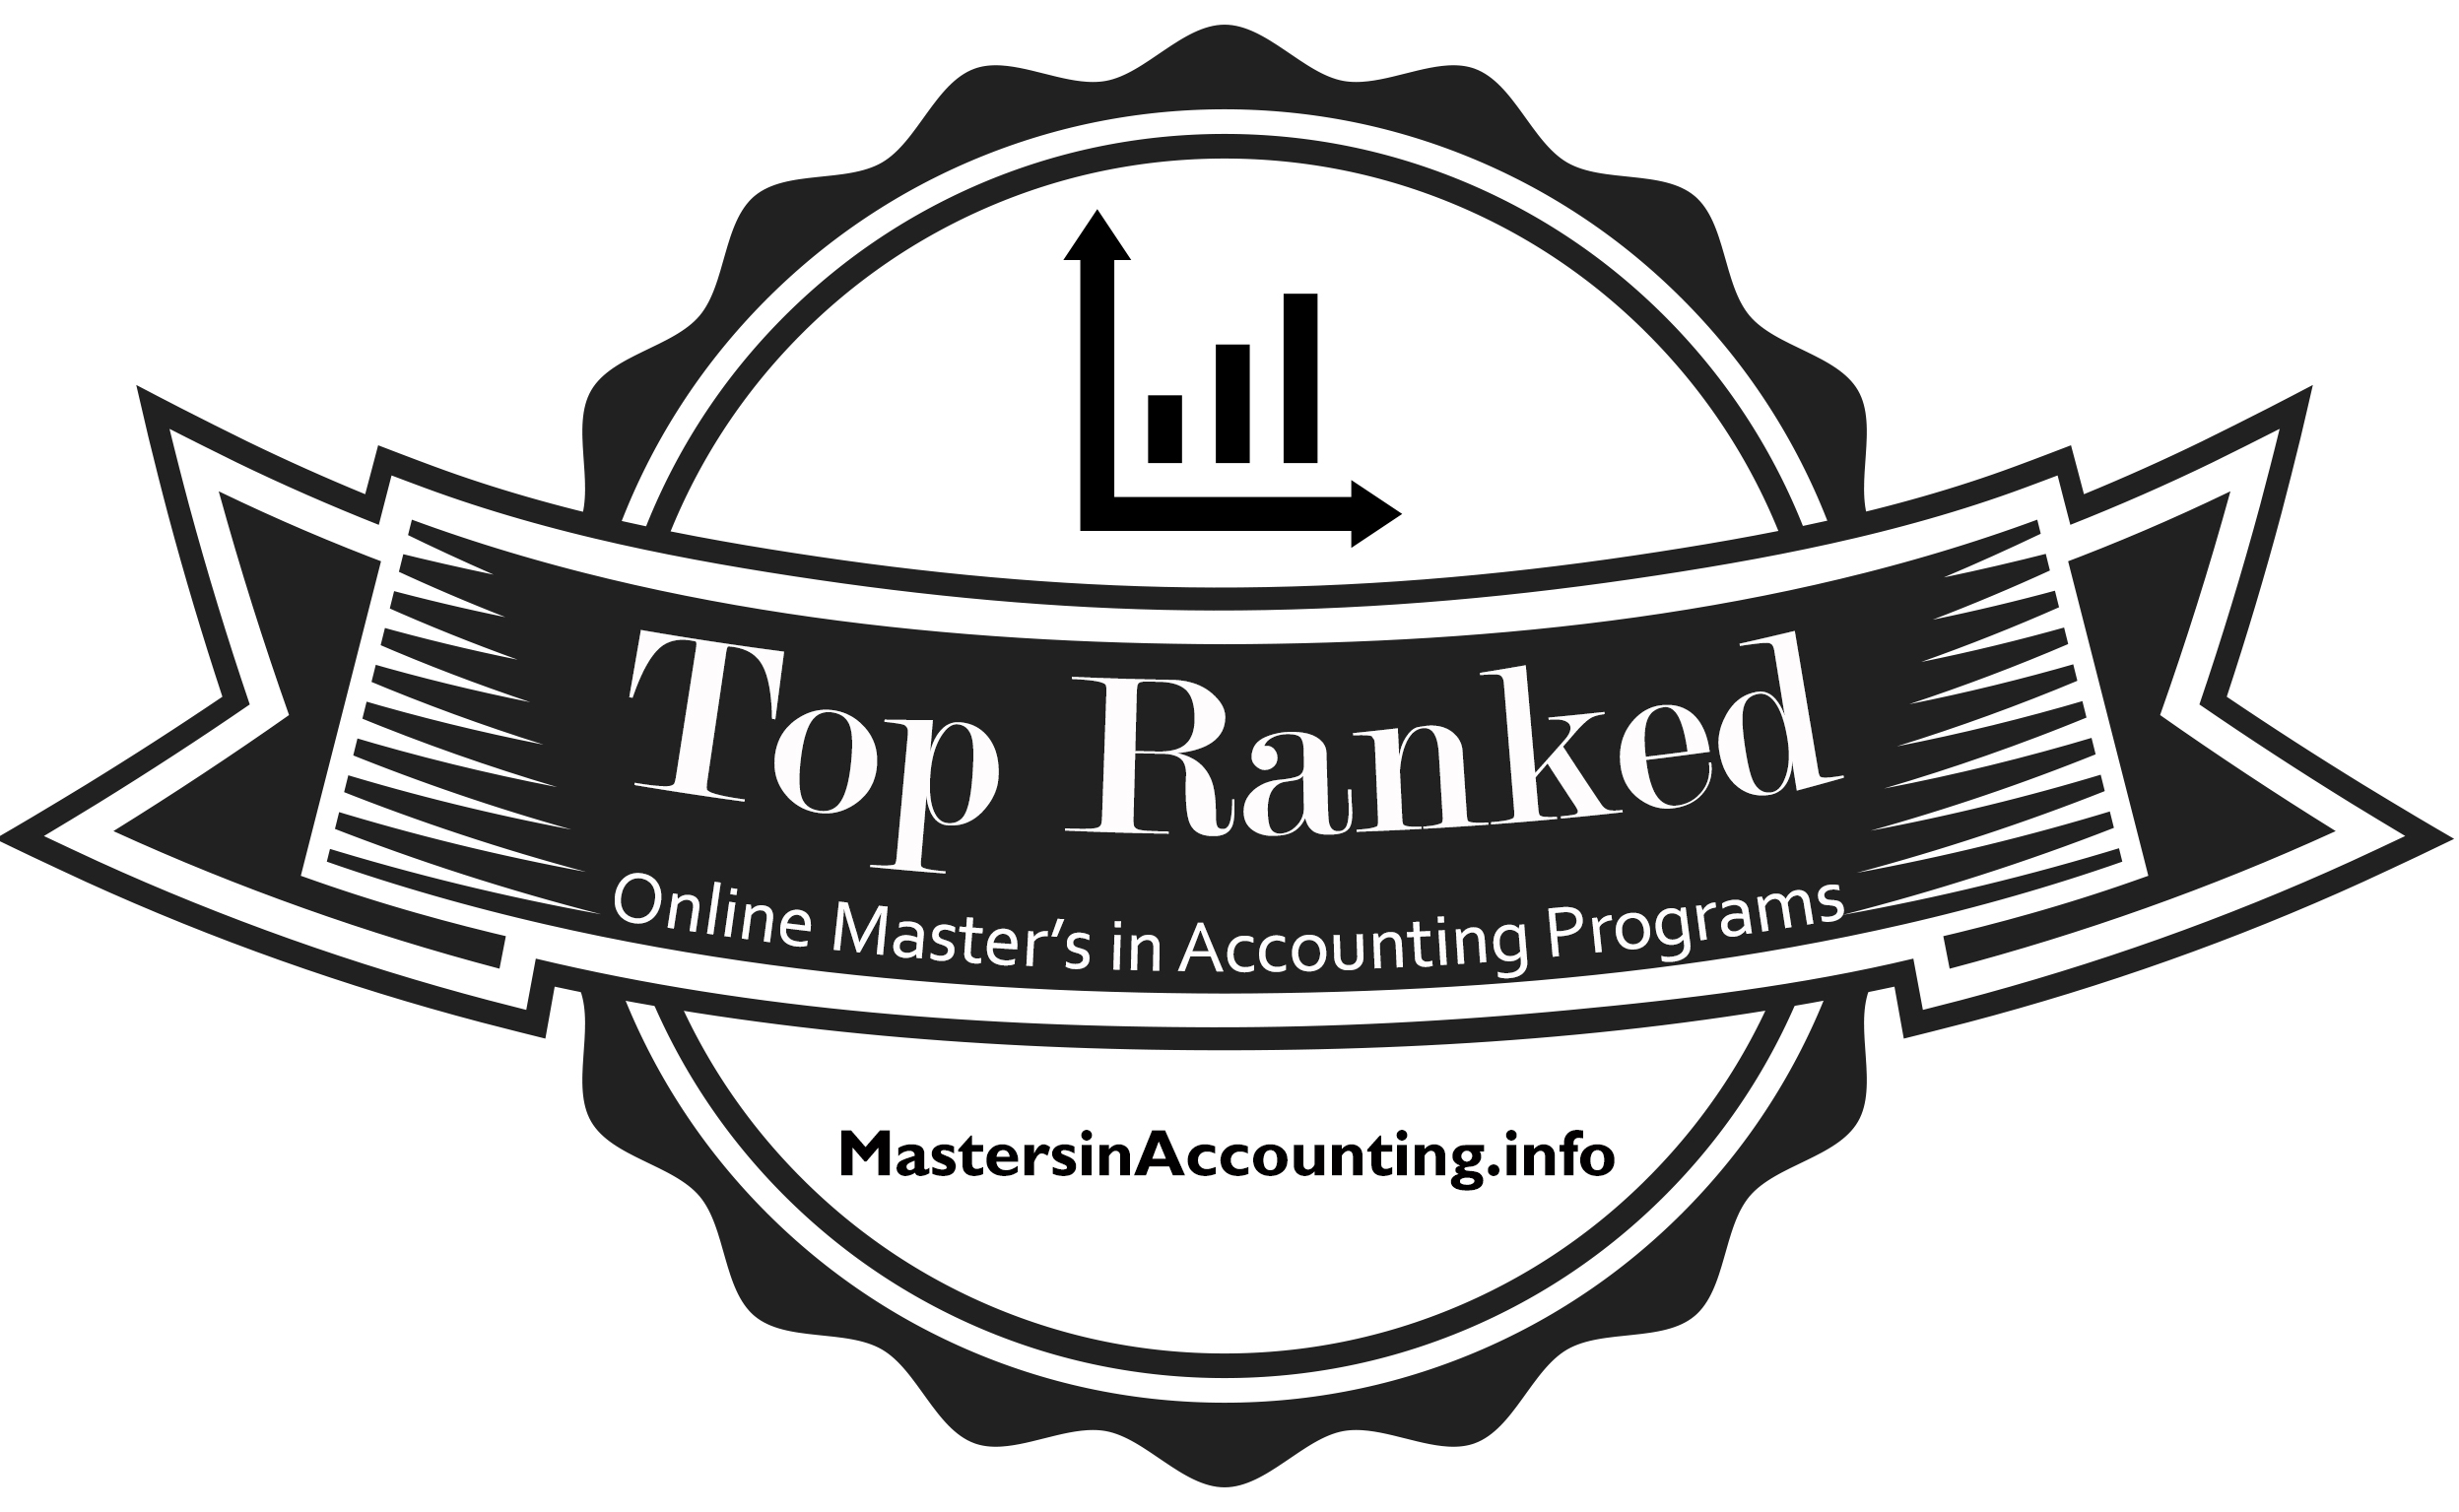 MastersinAccounting.info Releases Ranking of Top Online